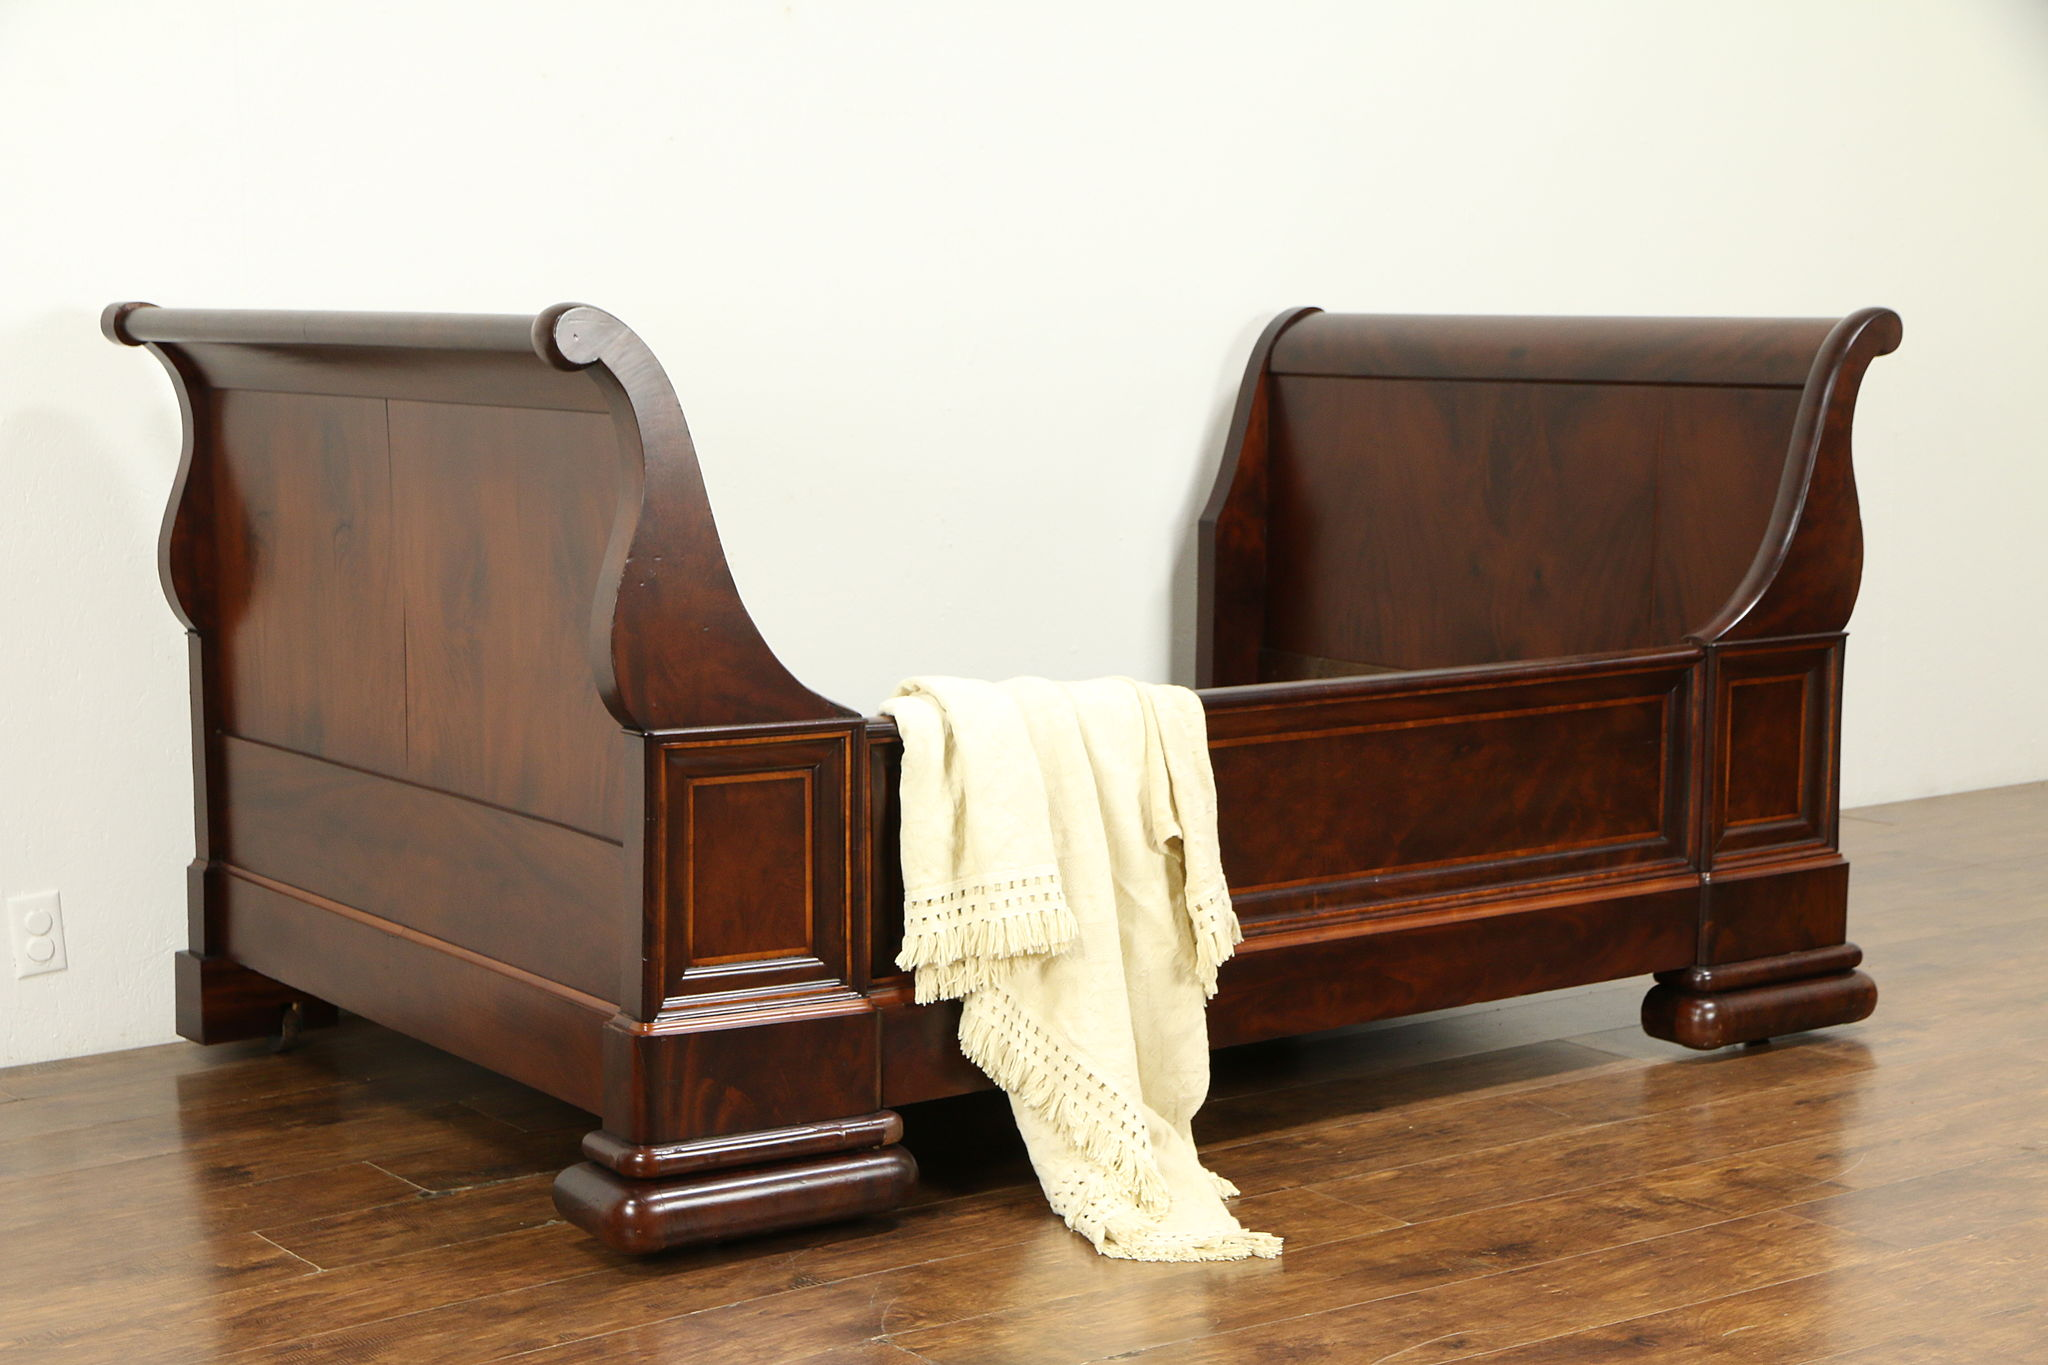 Sold Empire Antique 1840 Austrian Mahogany Sleigh Bed Or Day Bed 32444 Harp Gallery Antiques Furniture